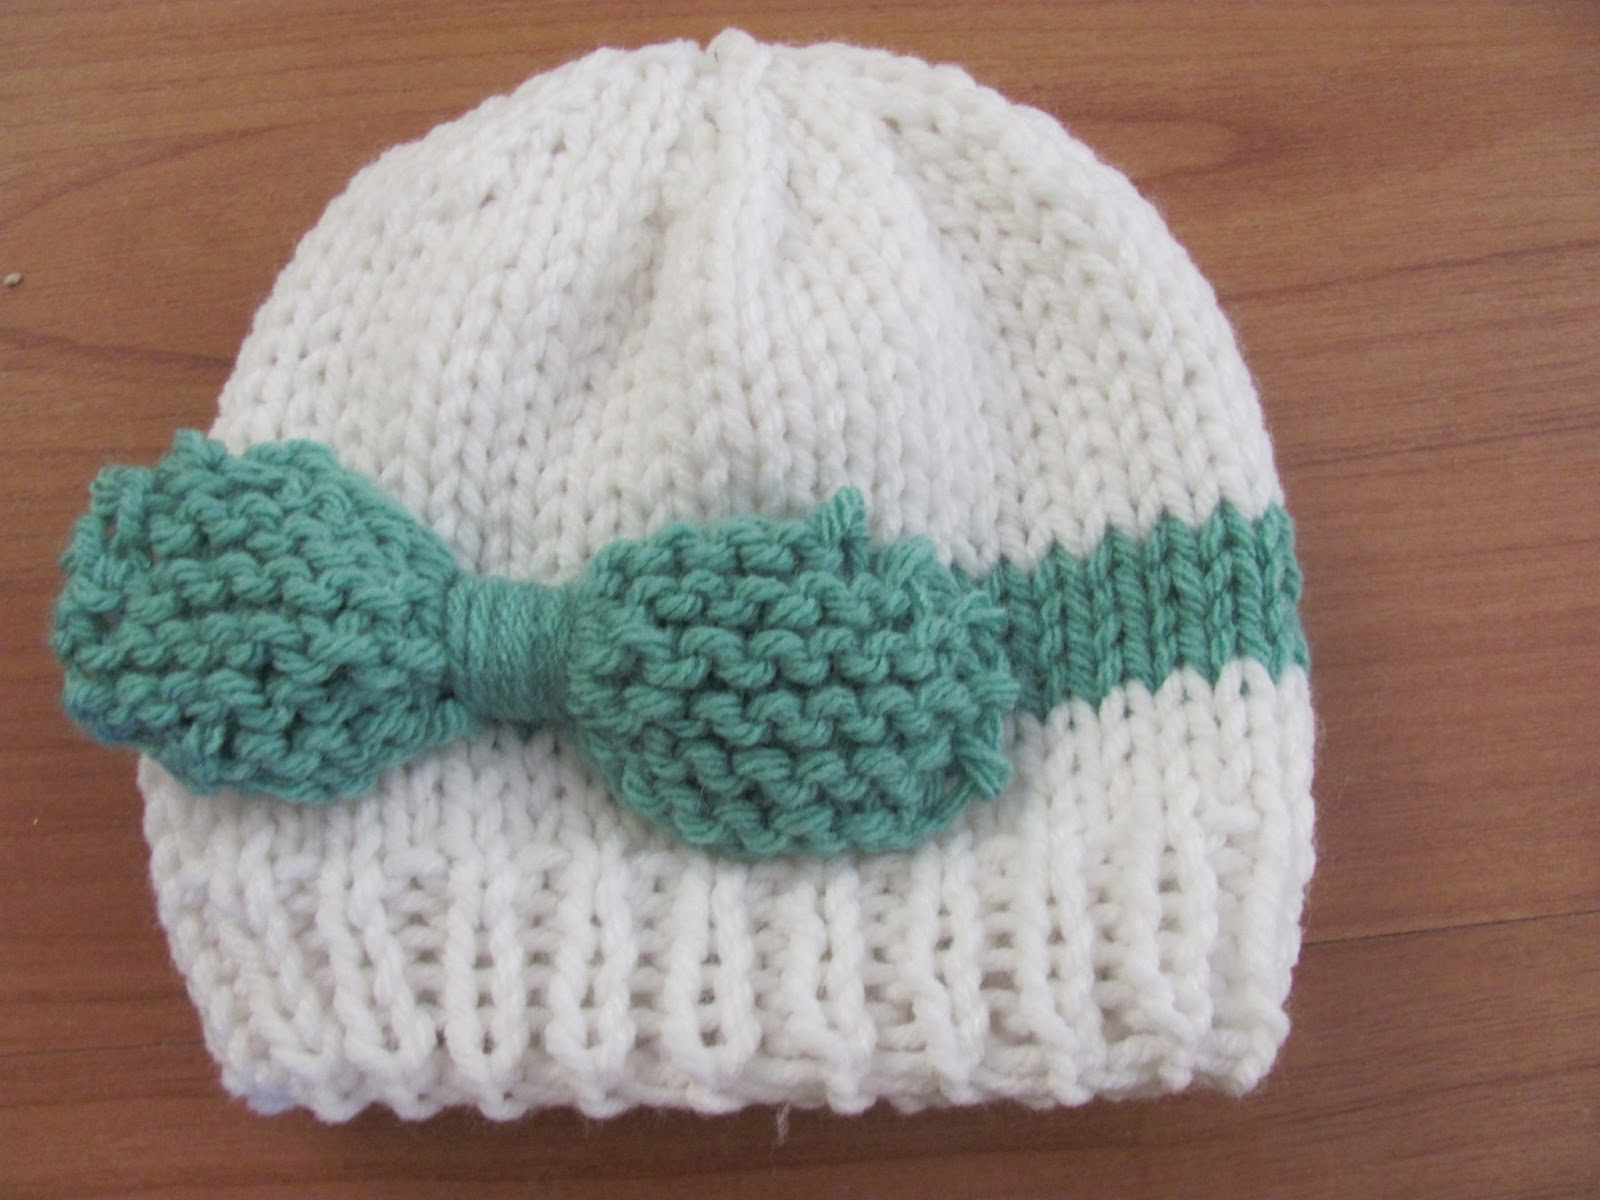 Knitting Patterns Caps : Twenty Something Granny: Knitted Baby Bow Hat